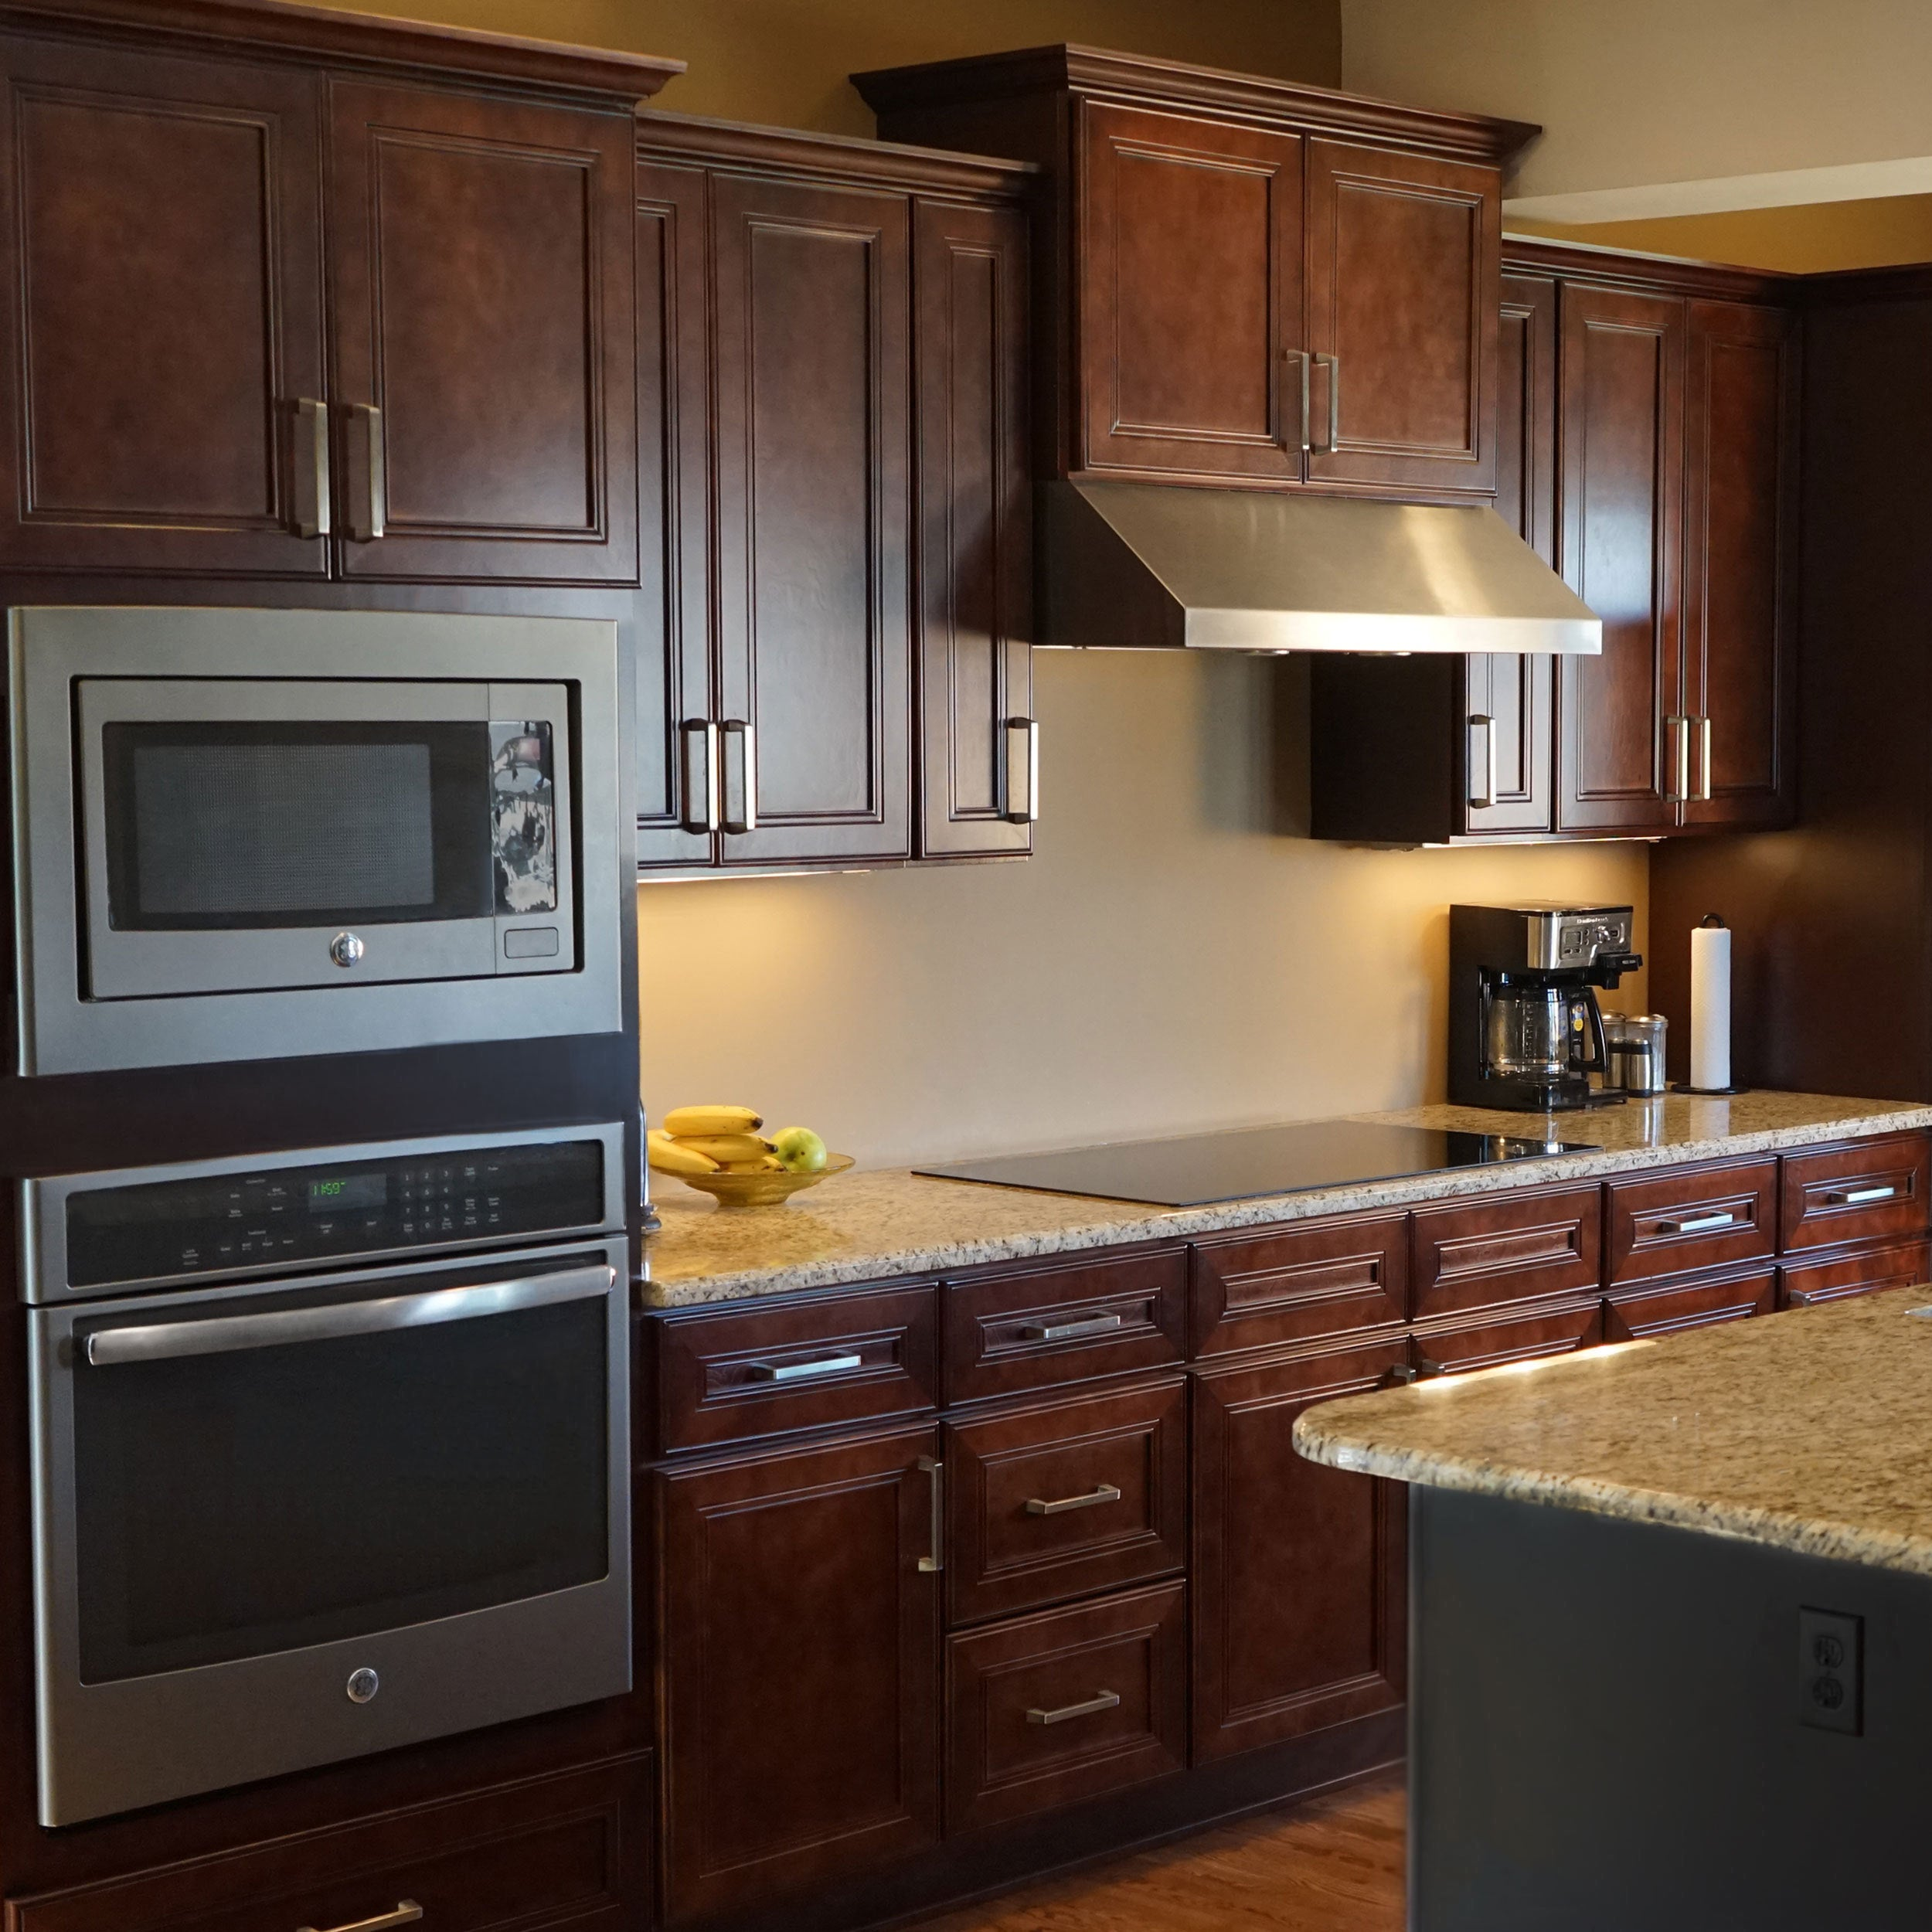 Everyday Cabinets Leo Saddle Cherry Mahogany Wood 33 Inch Double Oven Kitchen Cabinet Overstock 12303527